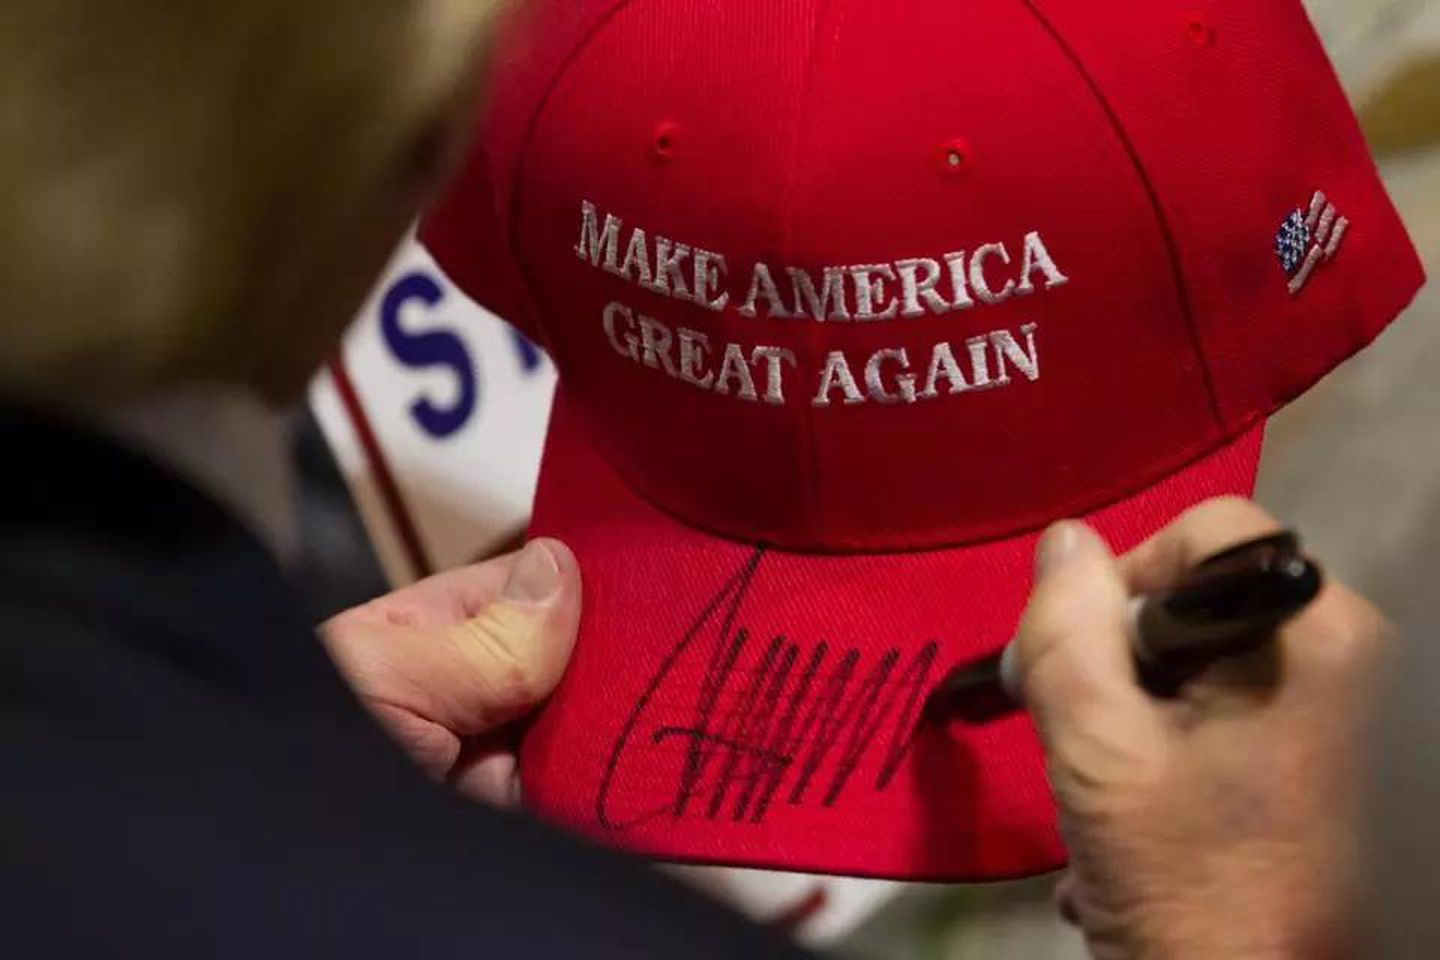 Yes, there are 'Make America Great Again' hat cakes, and yes, people seem to love them - The Boston Globe